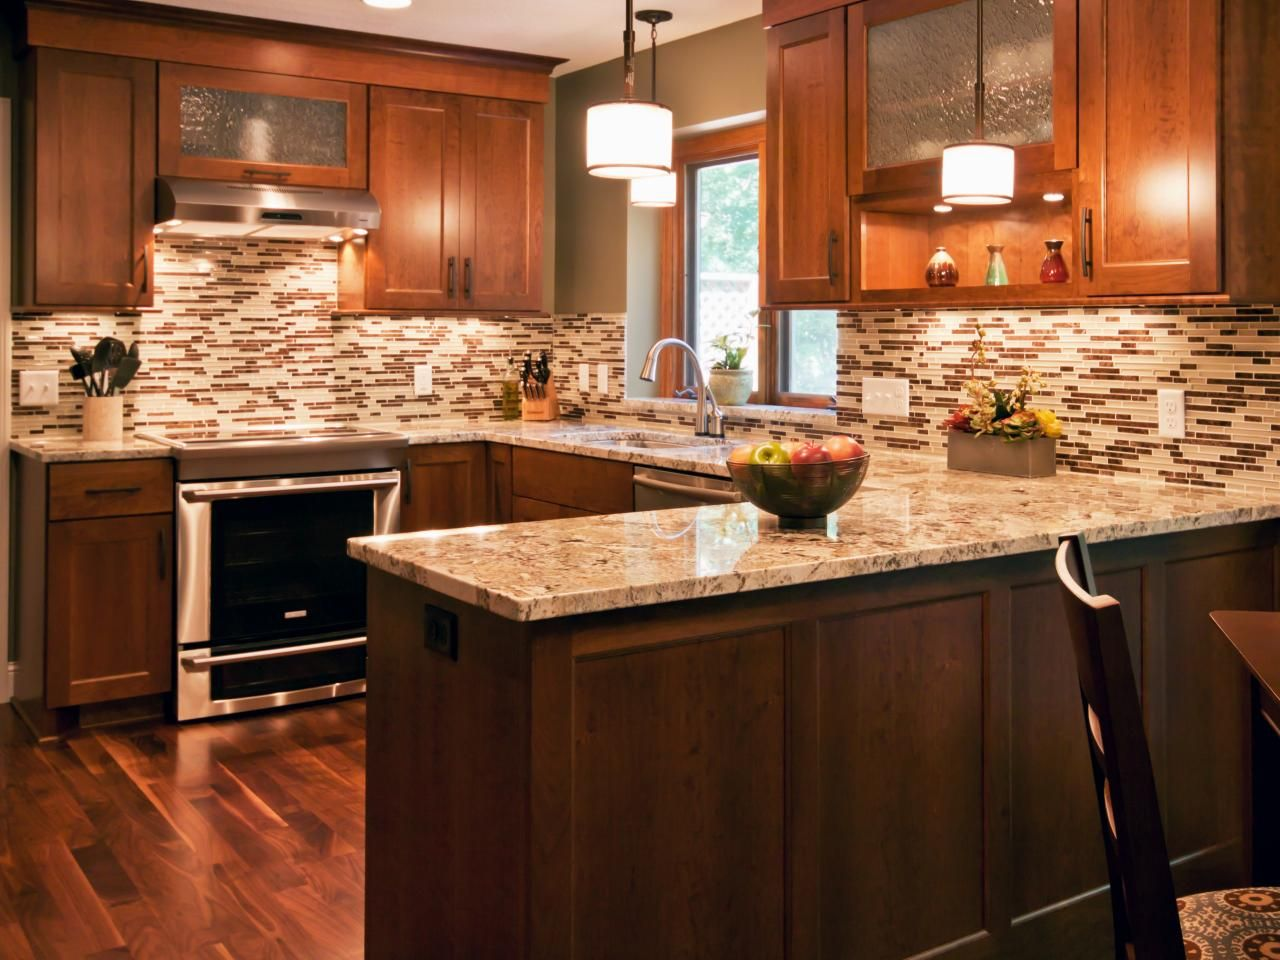 Pictures Of Beautiful Kitchen Designs Layouts From Cocinas